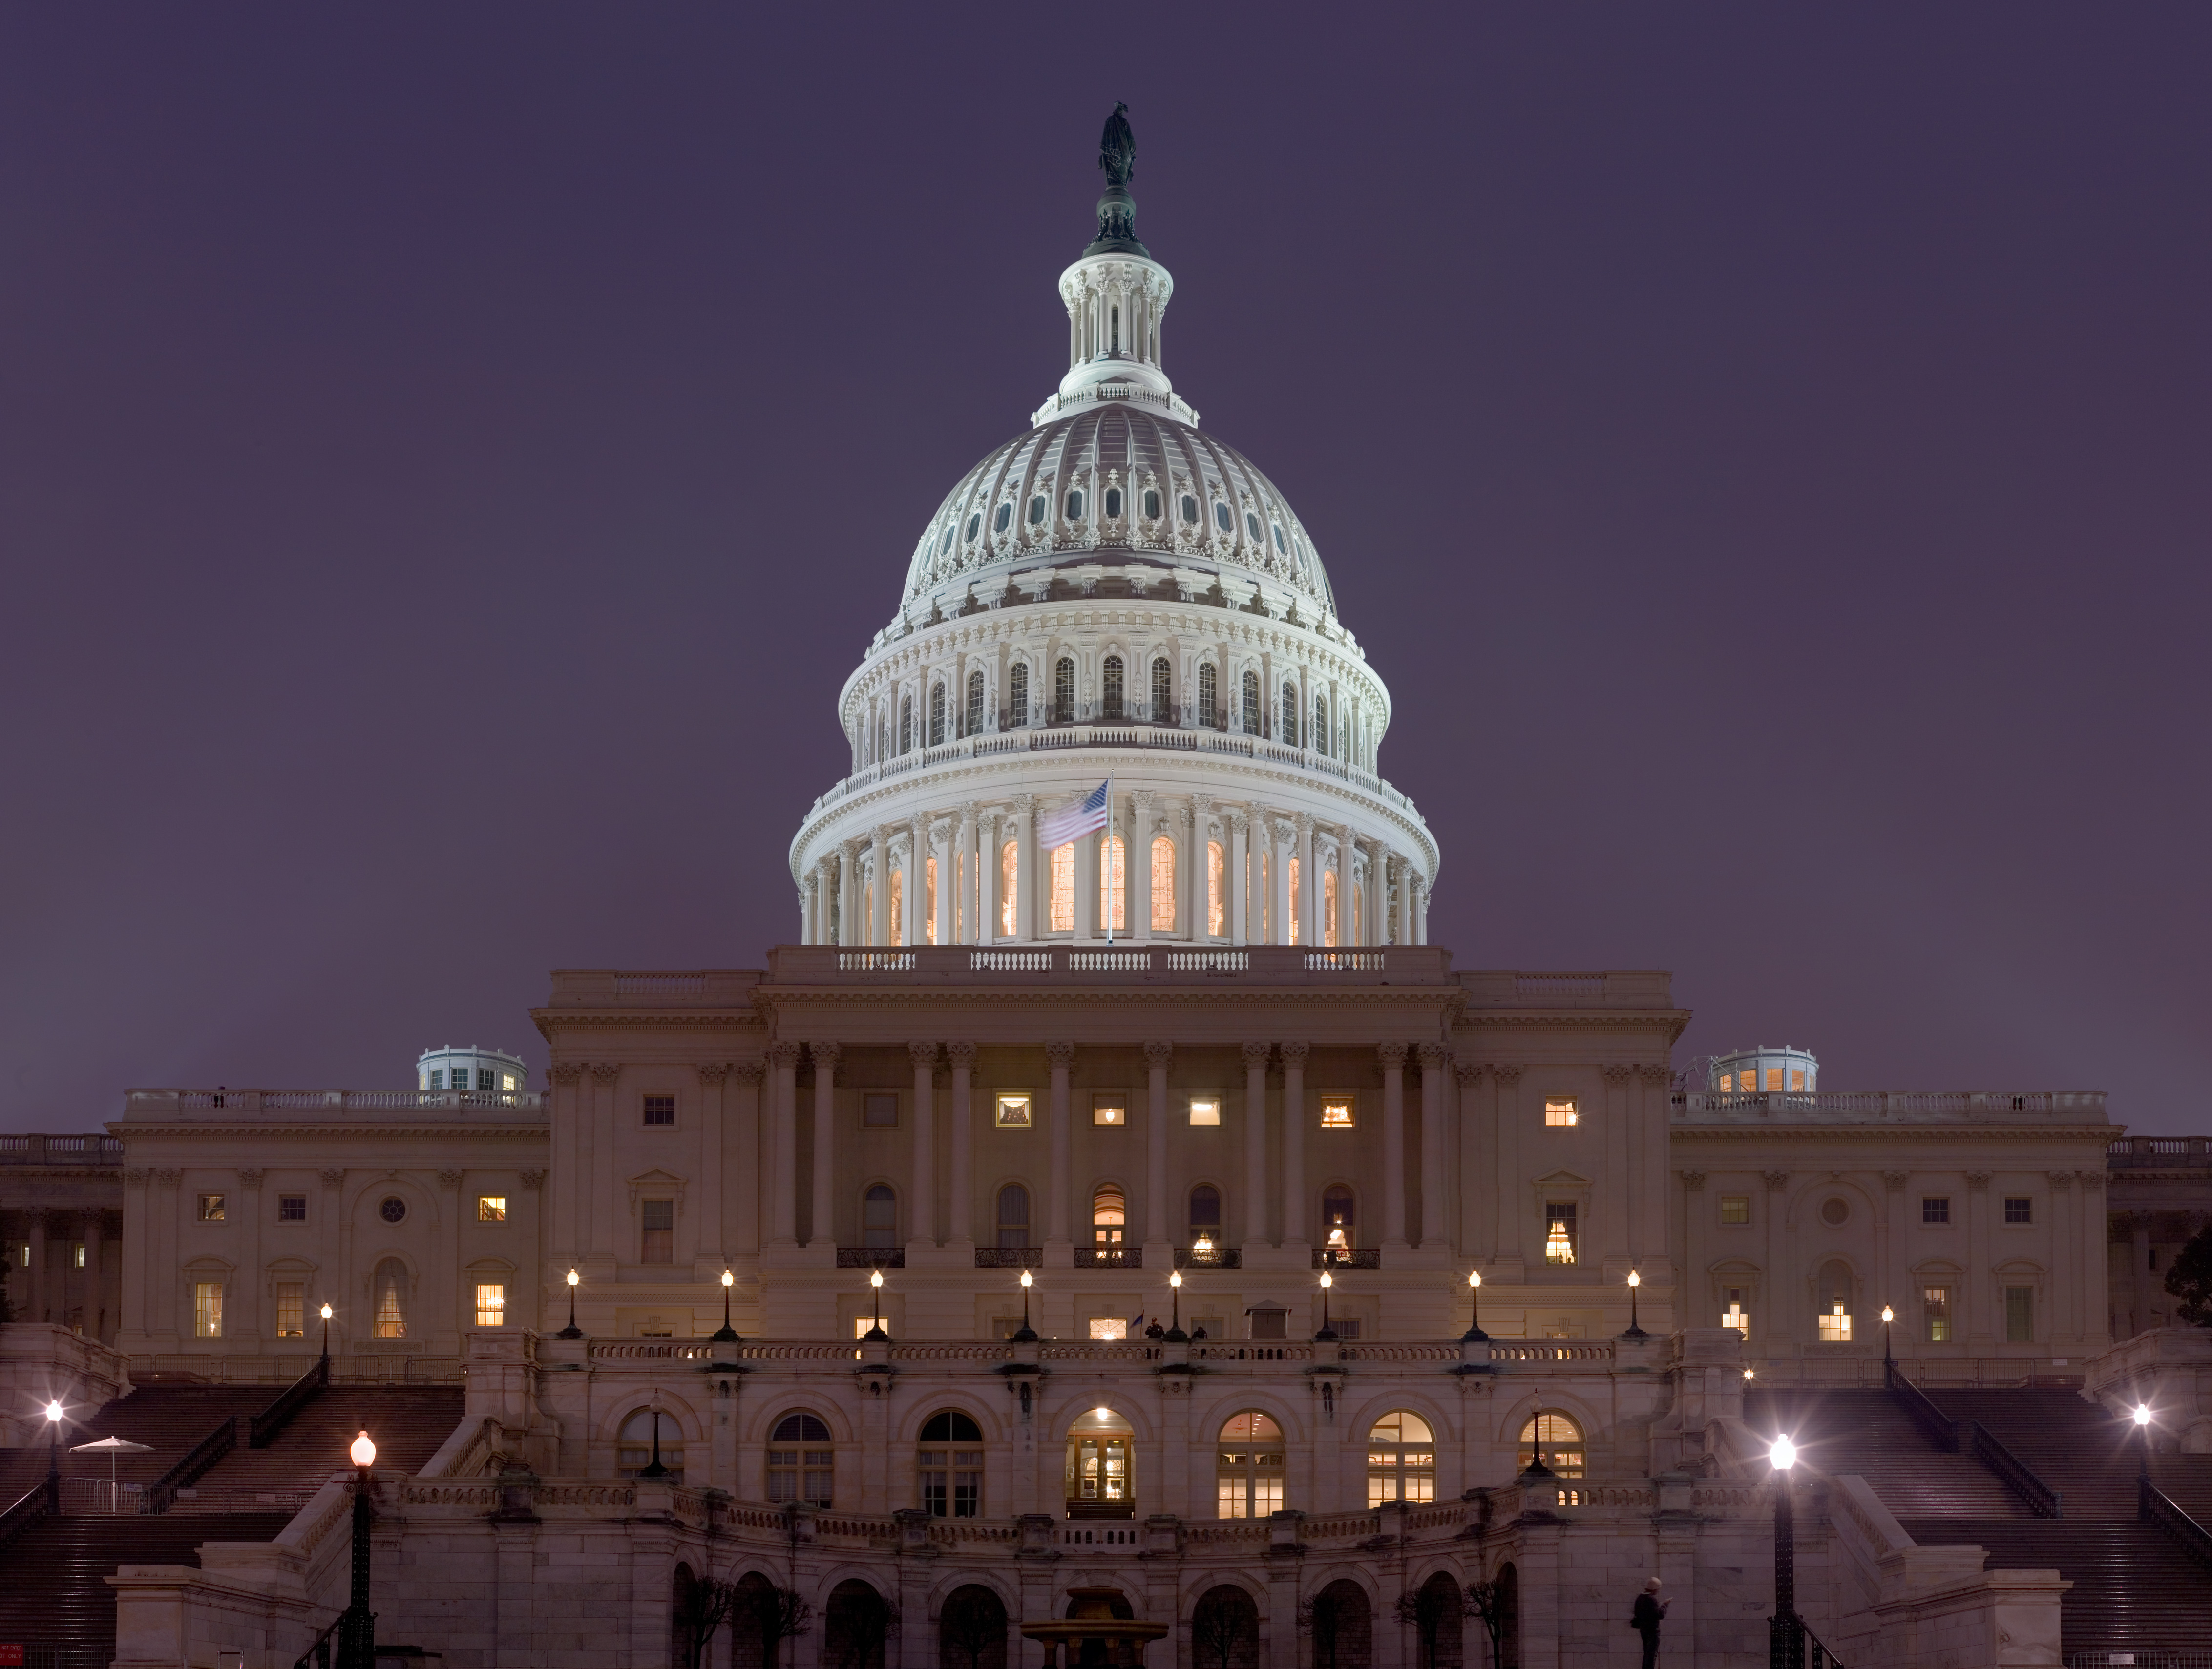 Infrastructure Featured in State of Union, House Hearing